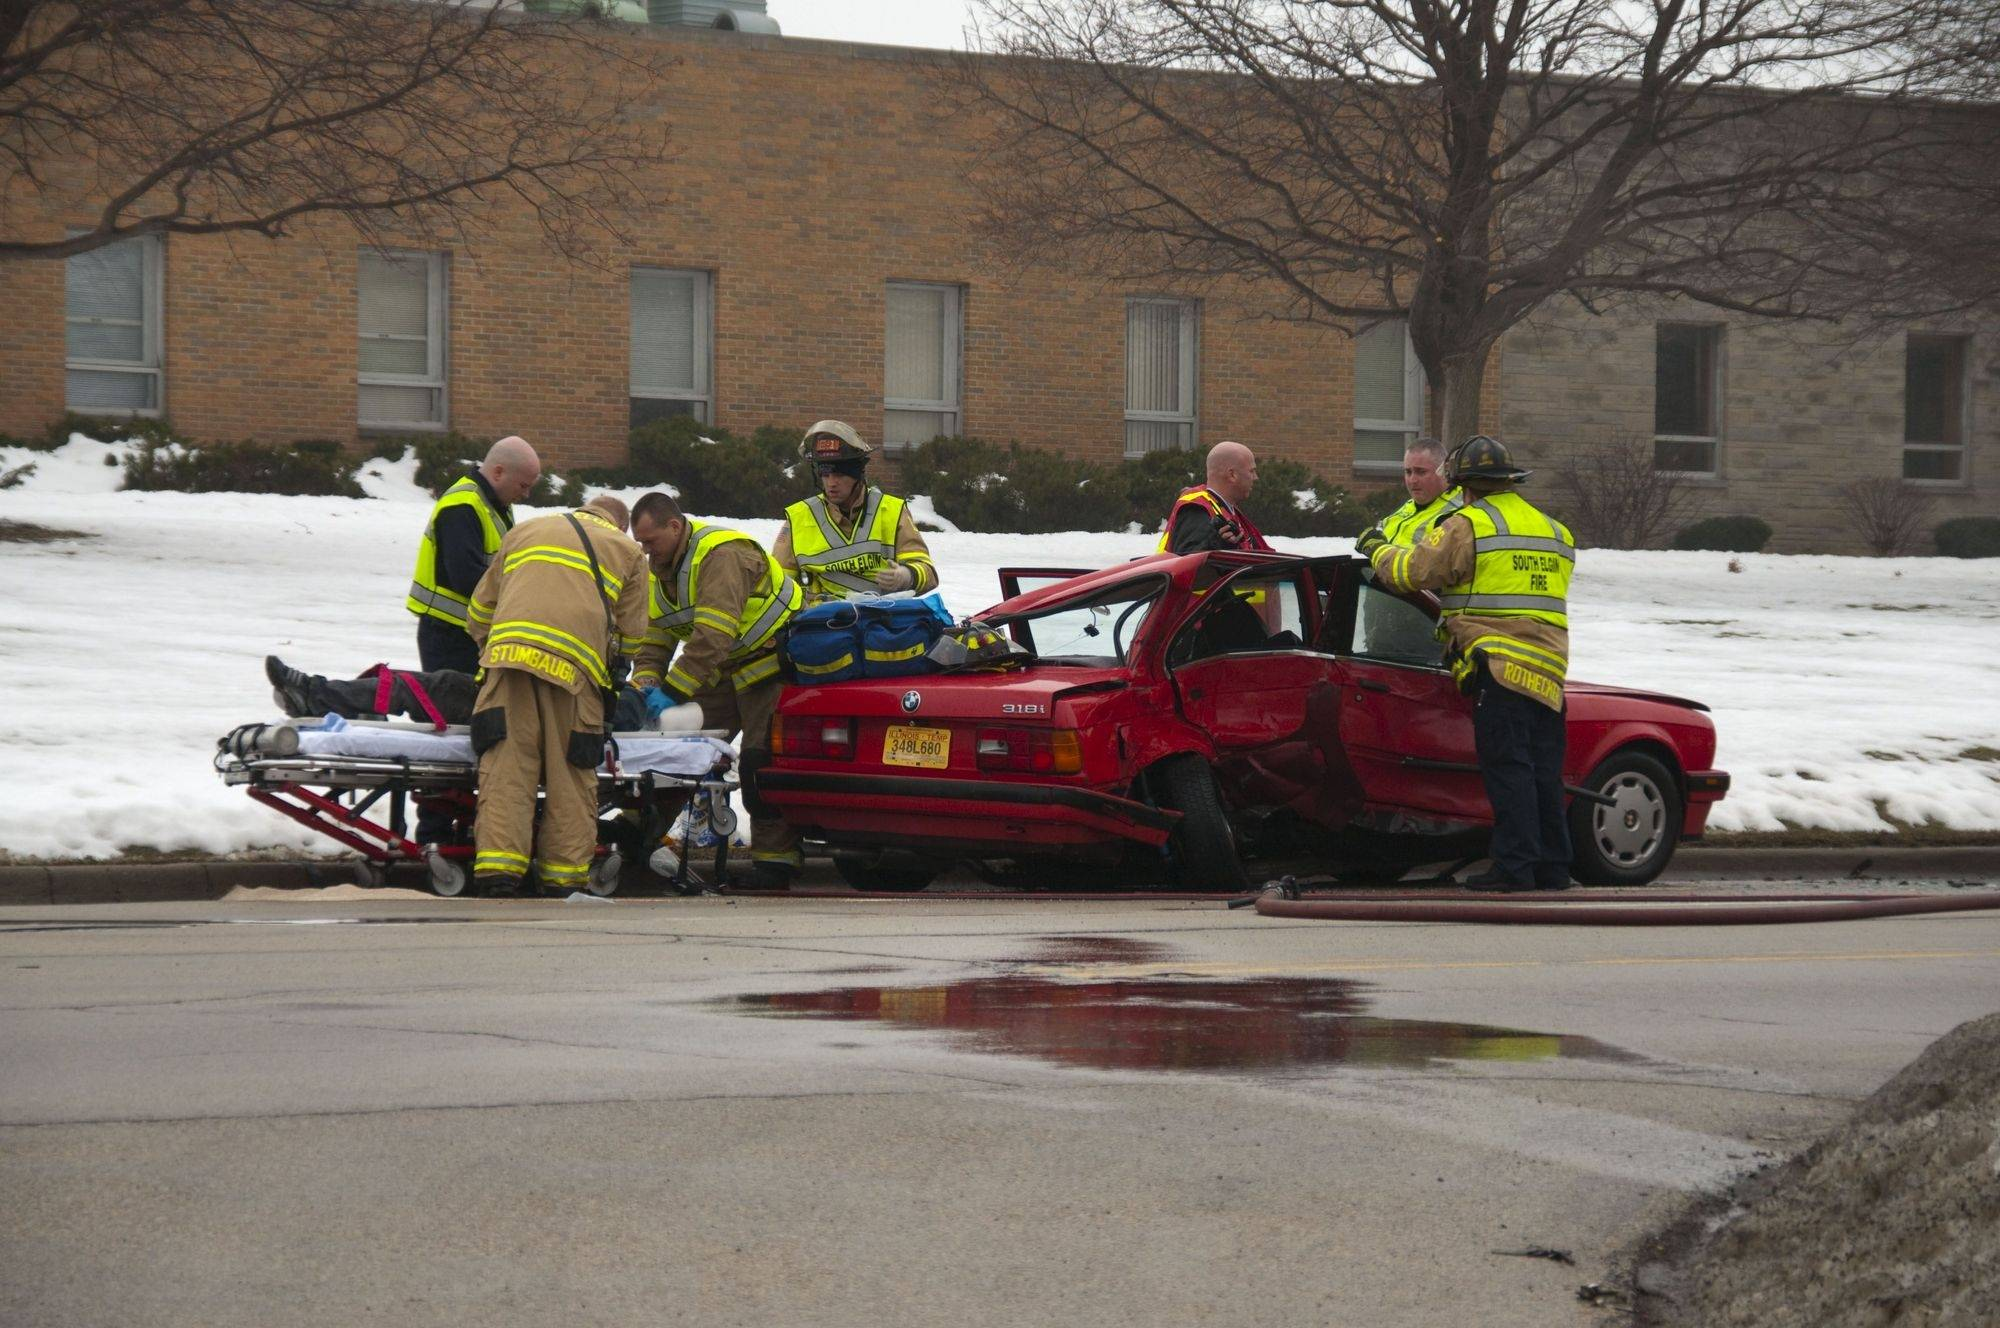 Three people were taken to the hospital after a crash at Route 31 and Josephine Avenue in South Elgin around 2 p.m. on Saturday.